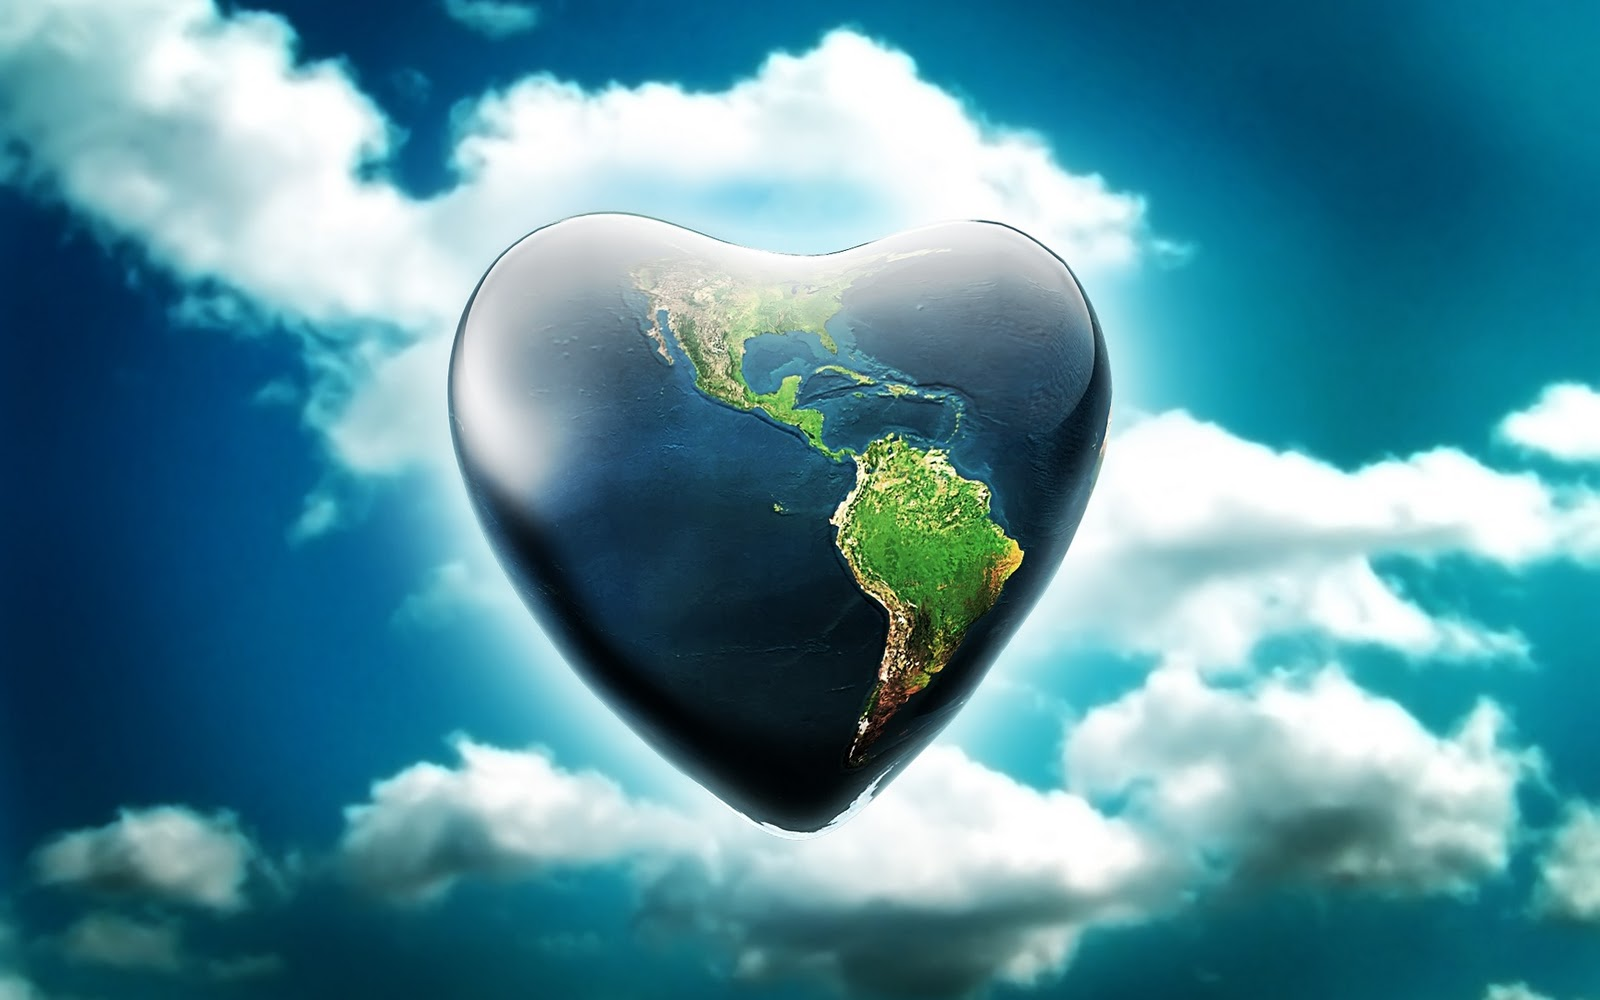 Wallpapers Facebook Cover Animated Car Wallpaper pure heart love 1600x1000